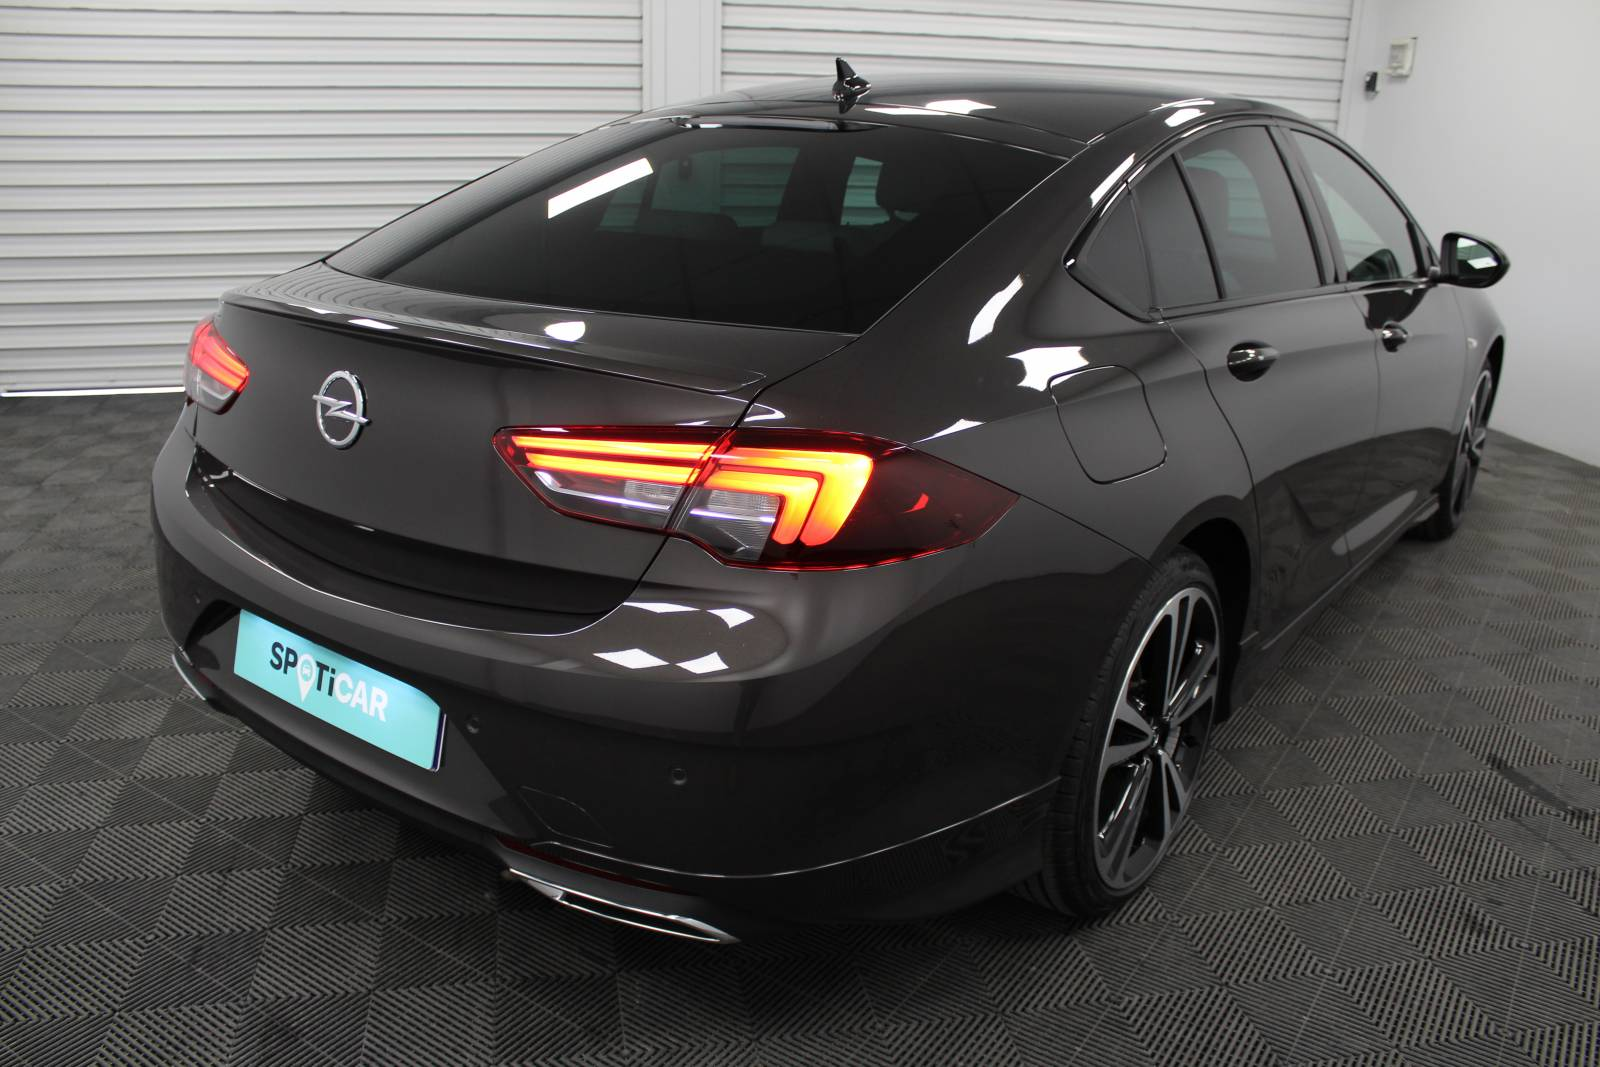 OPEL Insignia Grand Sport 2.0 Diesel 174 ch BVA8 - véhicule d'occasion - Site Internet Faurie - Opel - Faurie Motor Charente Angouleme - 16160 - Gond-Pontouvre - 13